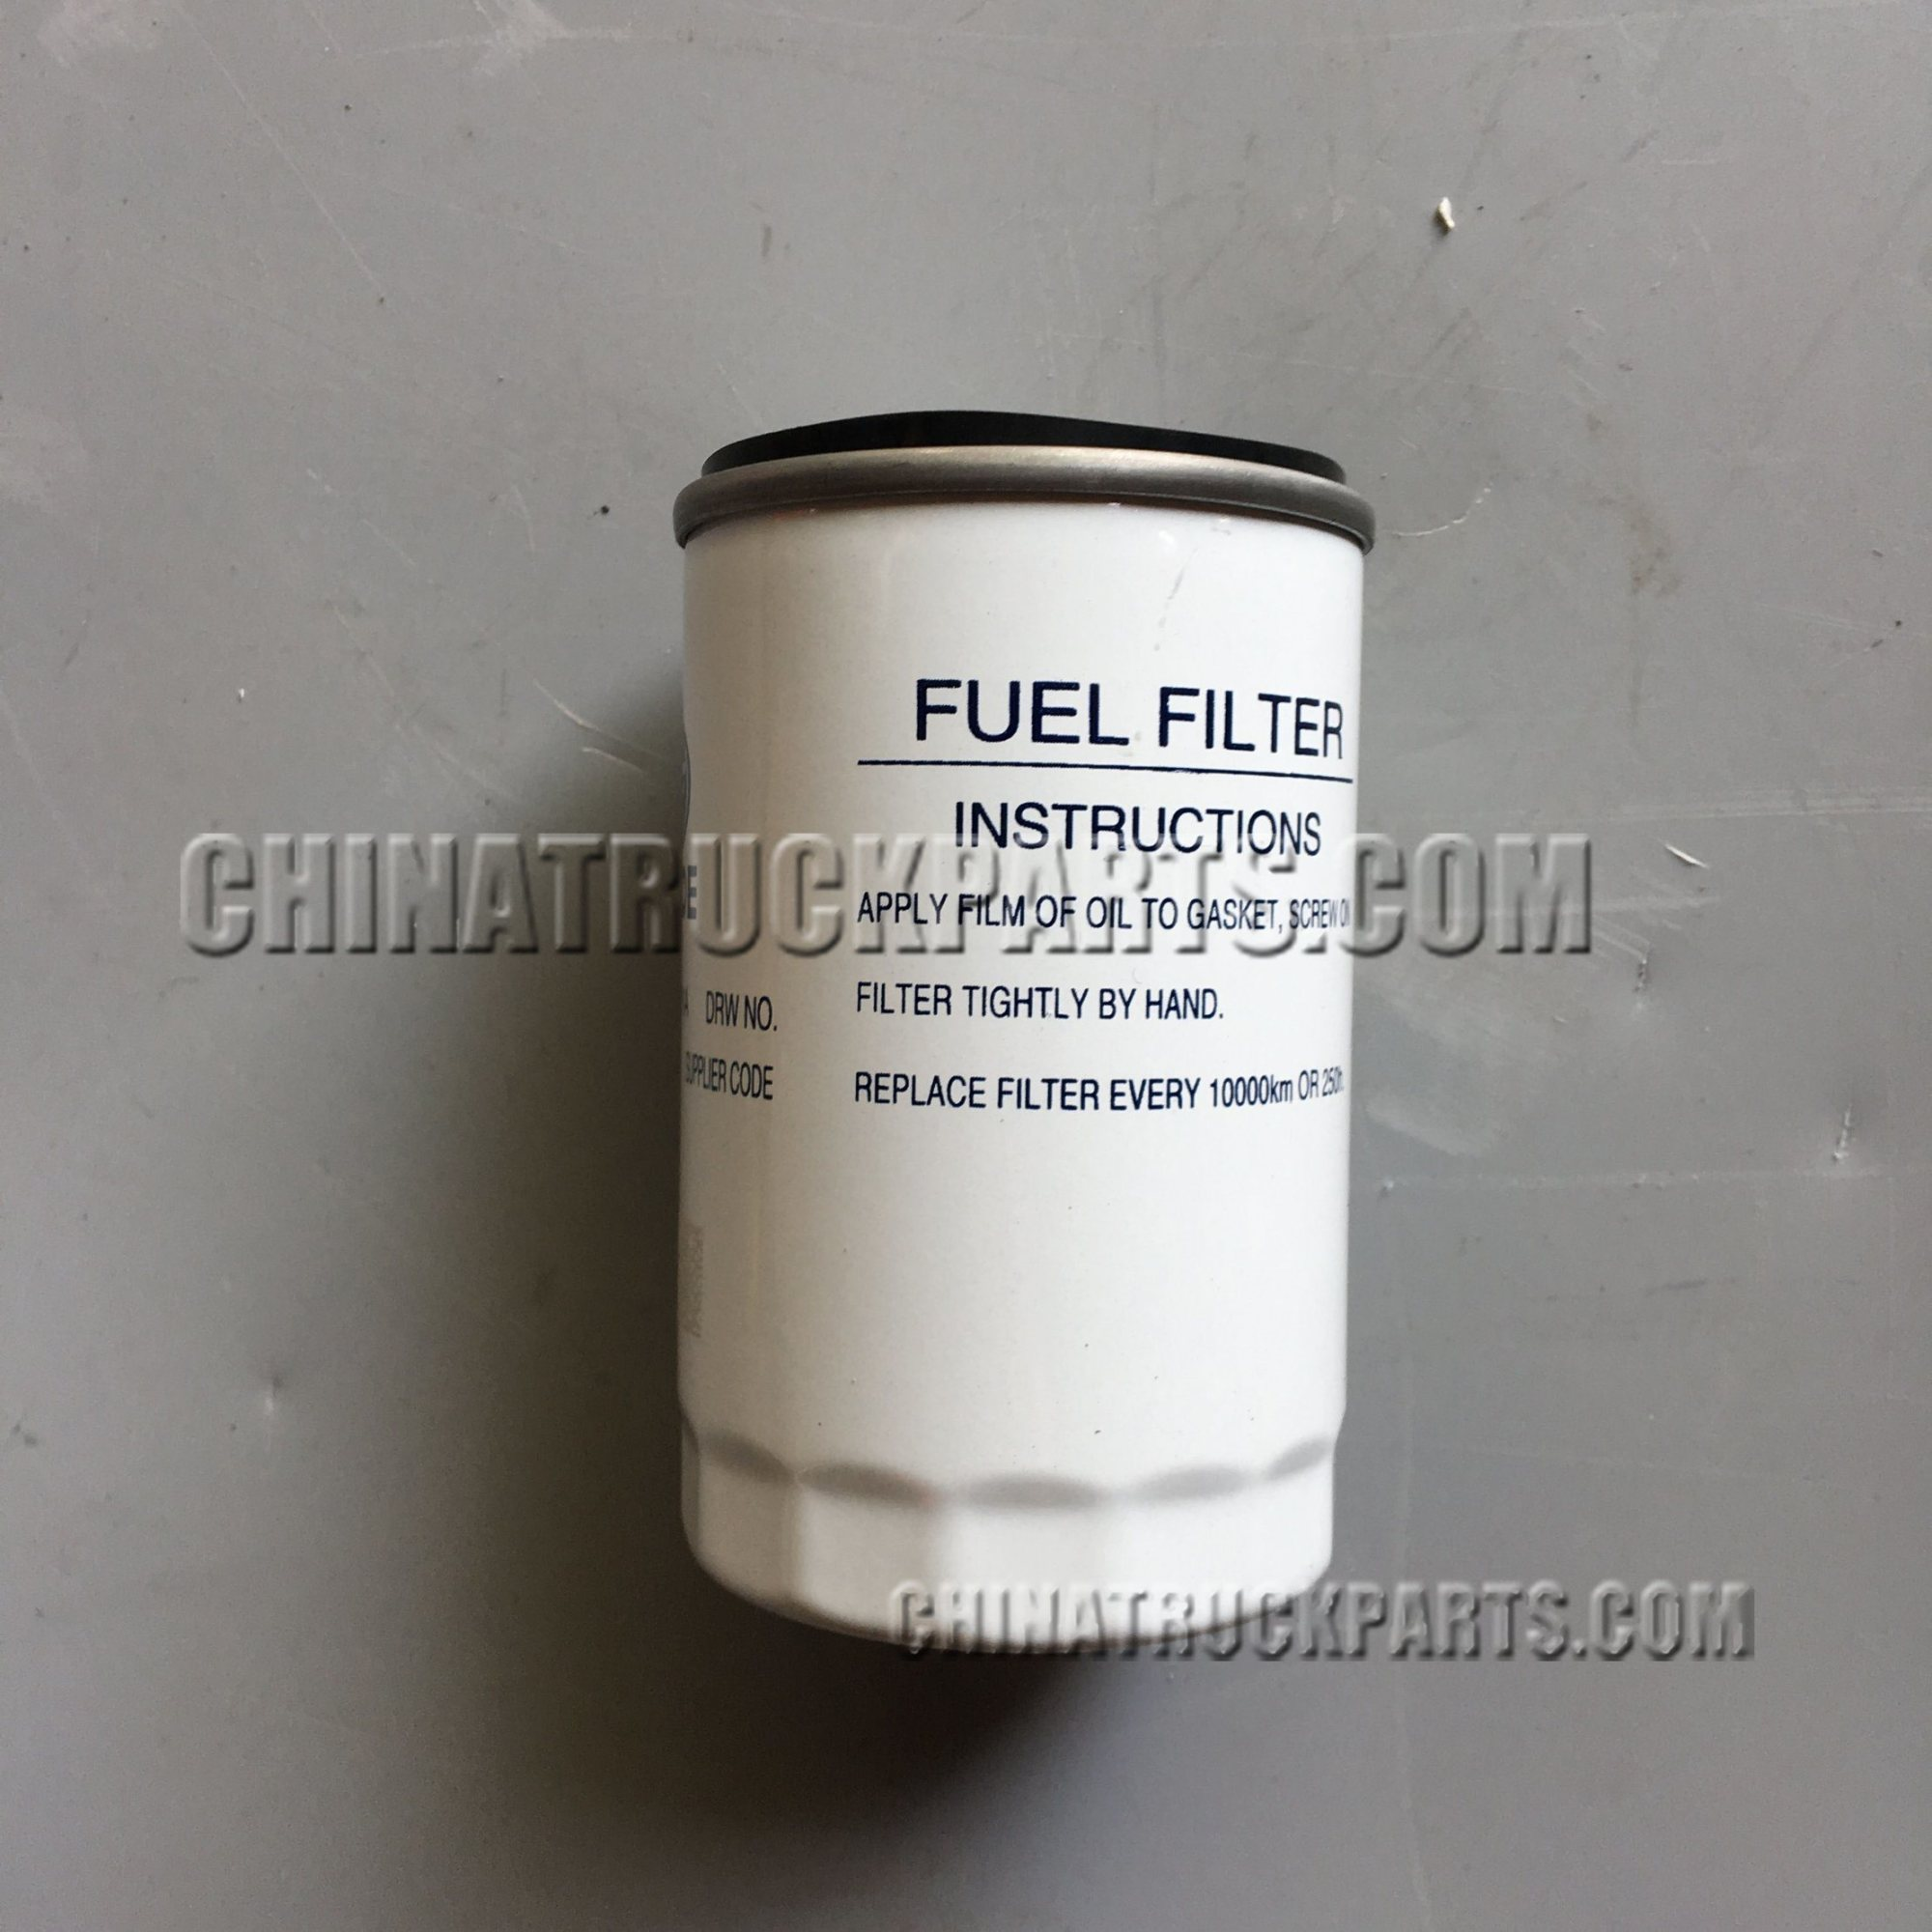 hight resolution of china faw j5k dump truck parts fuel filter 1117010 001 0000a for sale china fuel filter j5k fuel filter